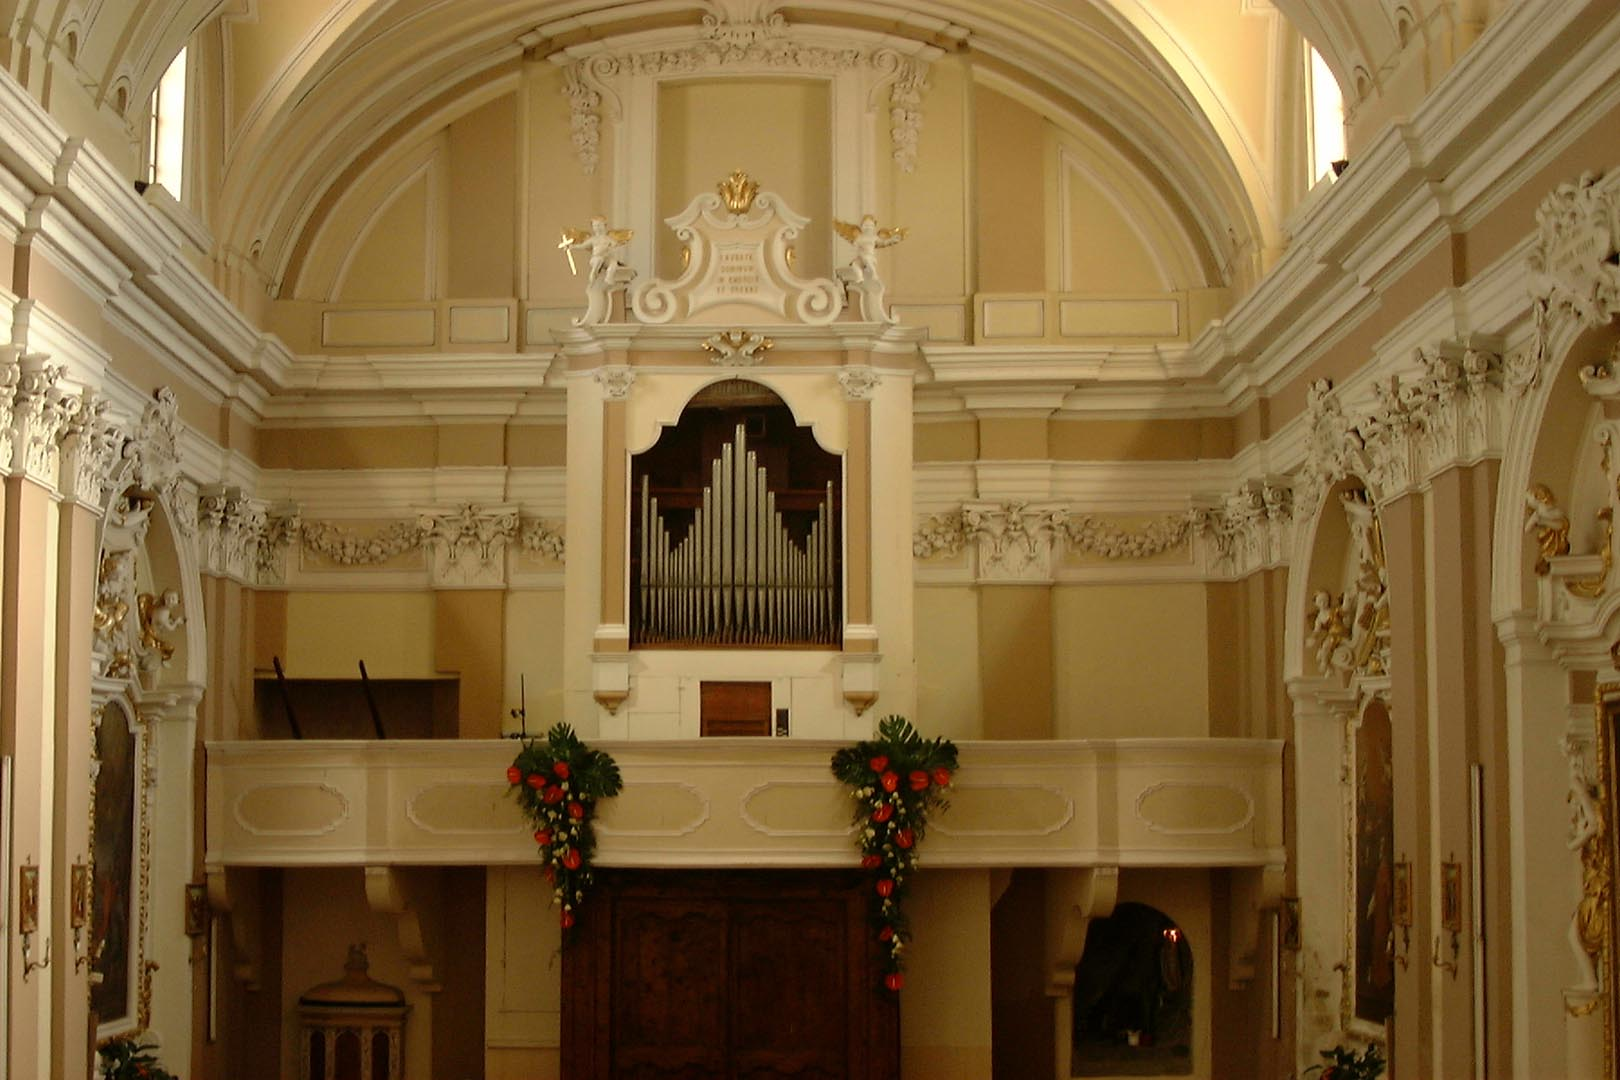 Choir loft with the organ by G. Callido, 1776